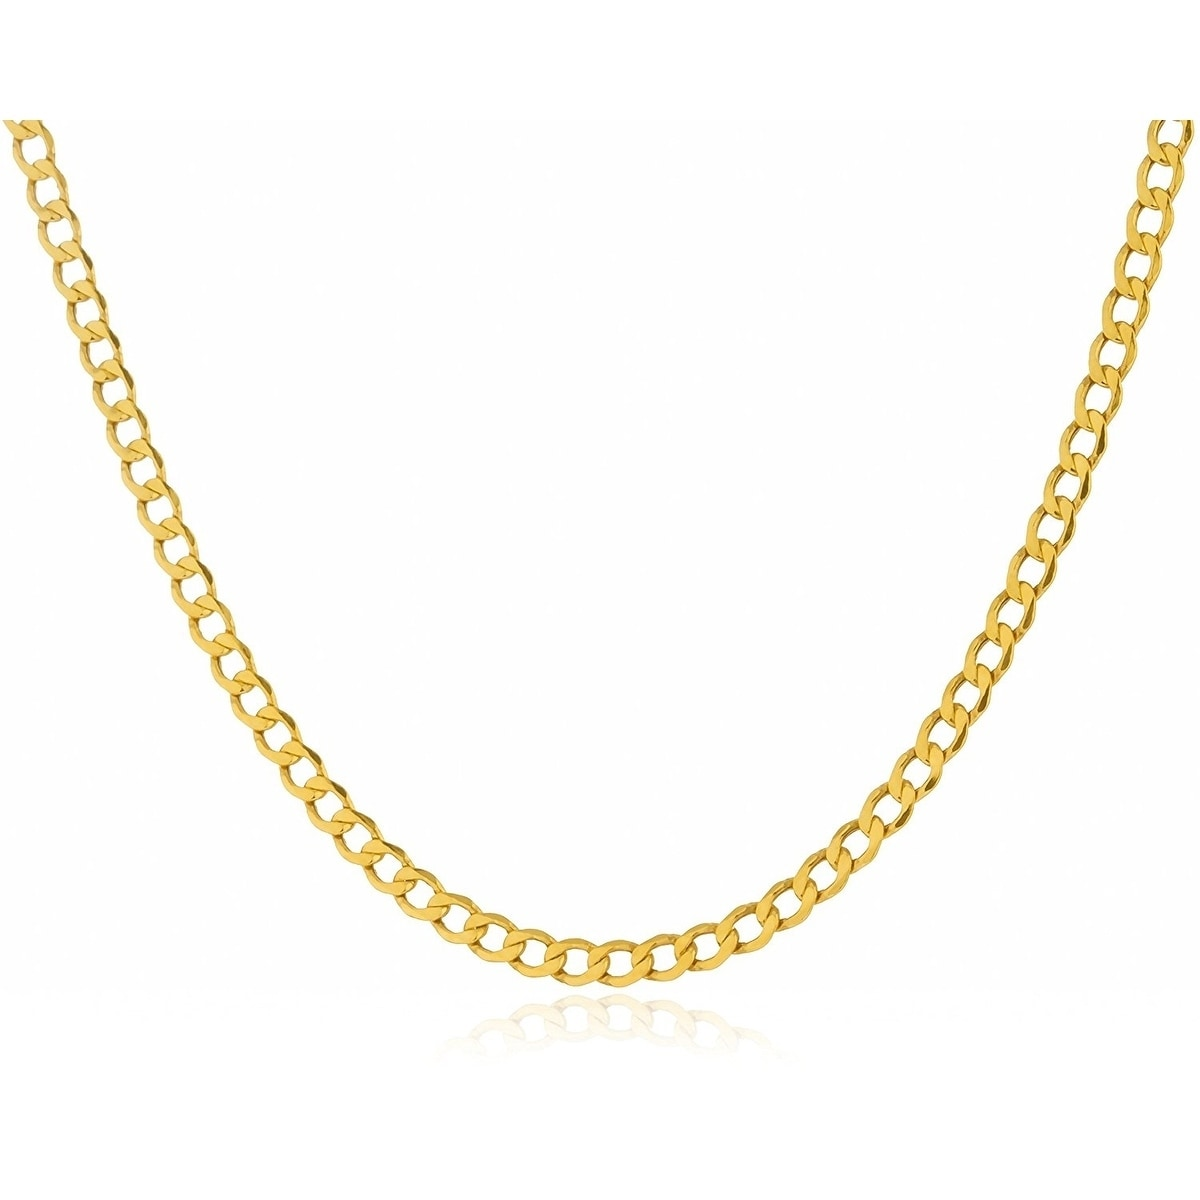 32880adc10a08 3.3MM Cuban Curb Link Chain Necklace in 14K Solid Gold BOXED